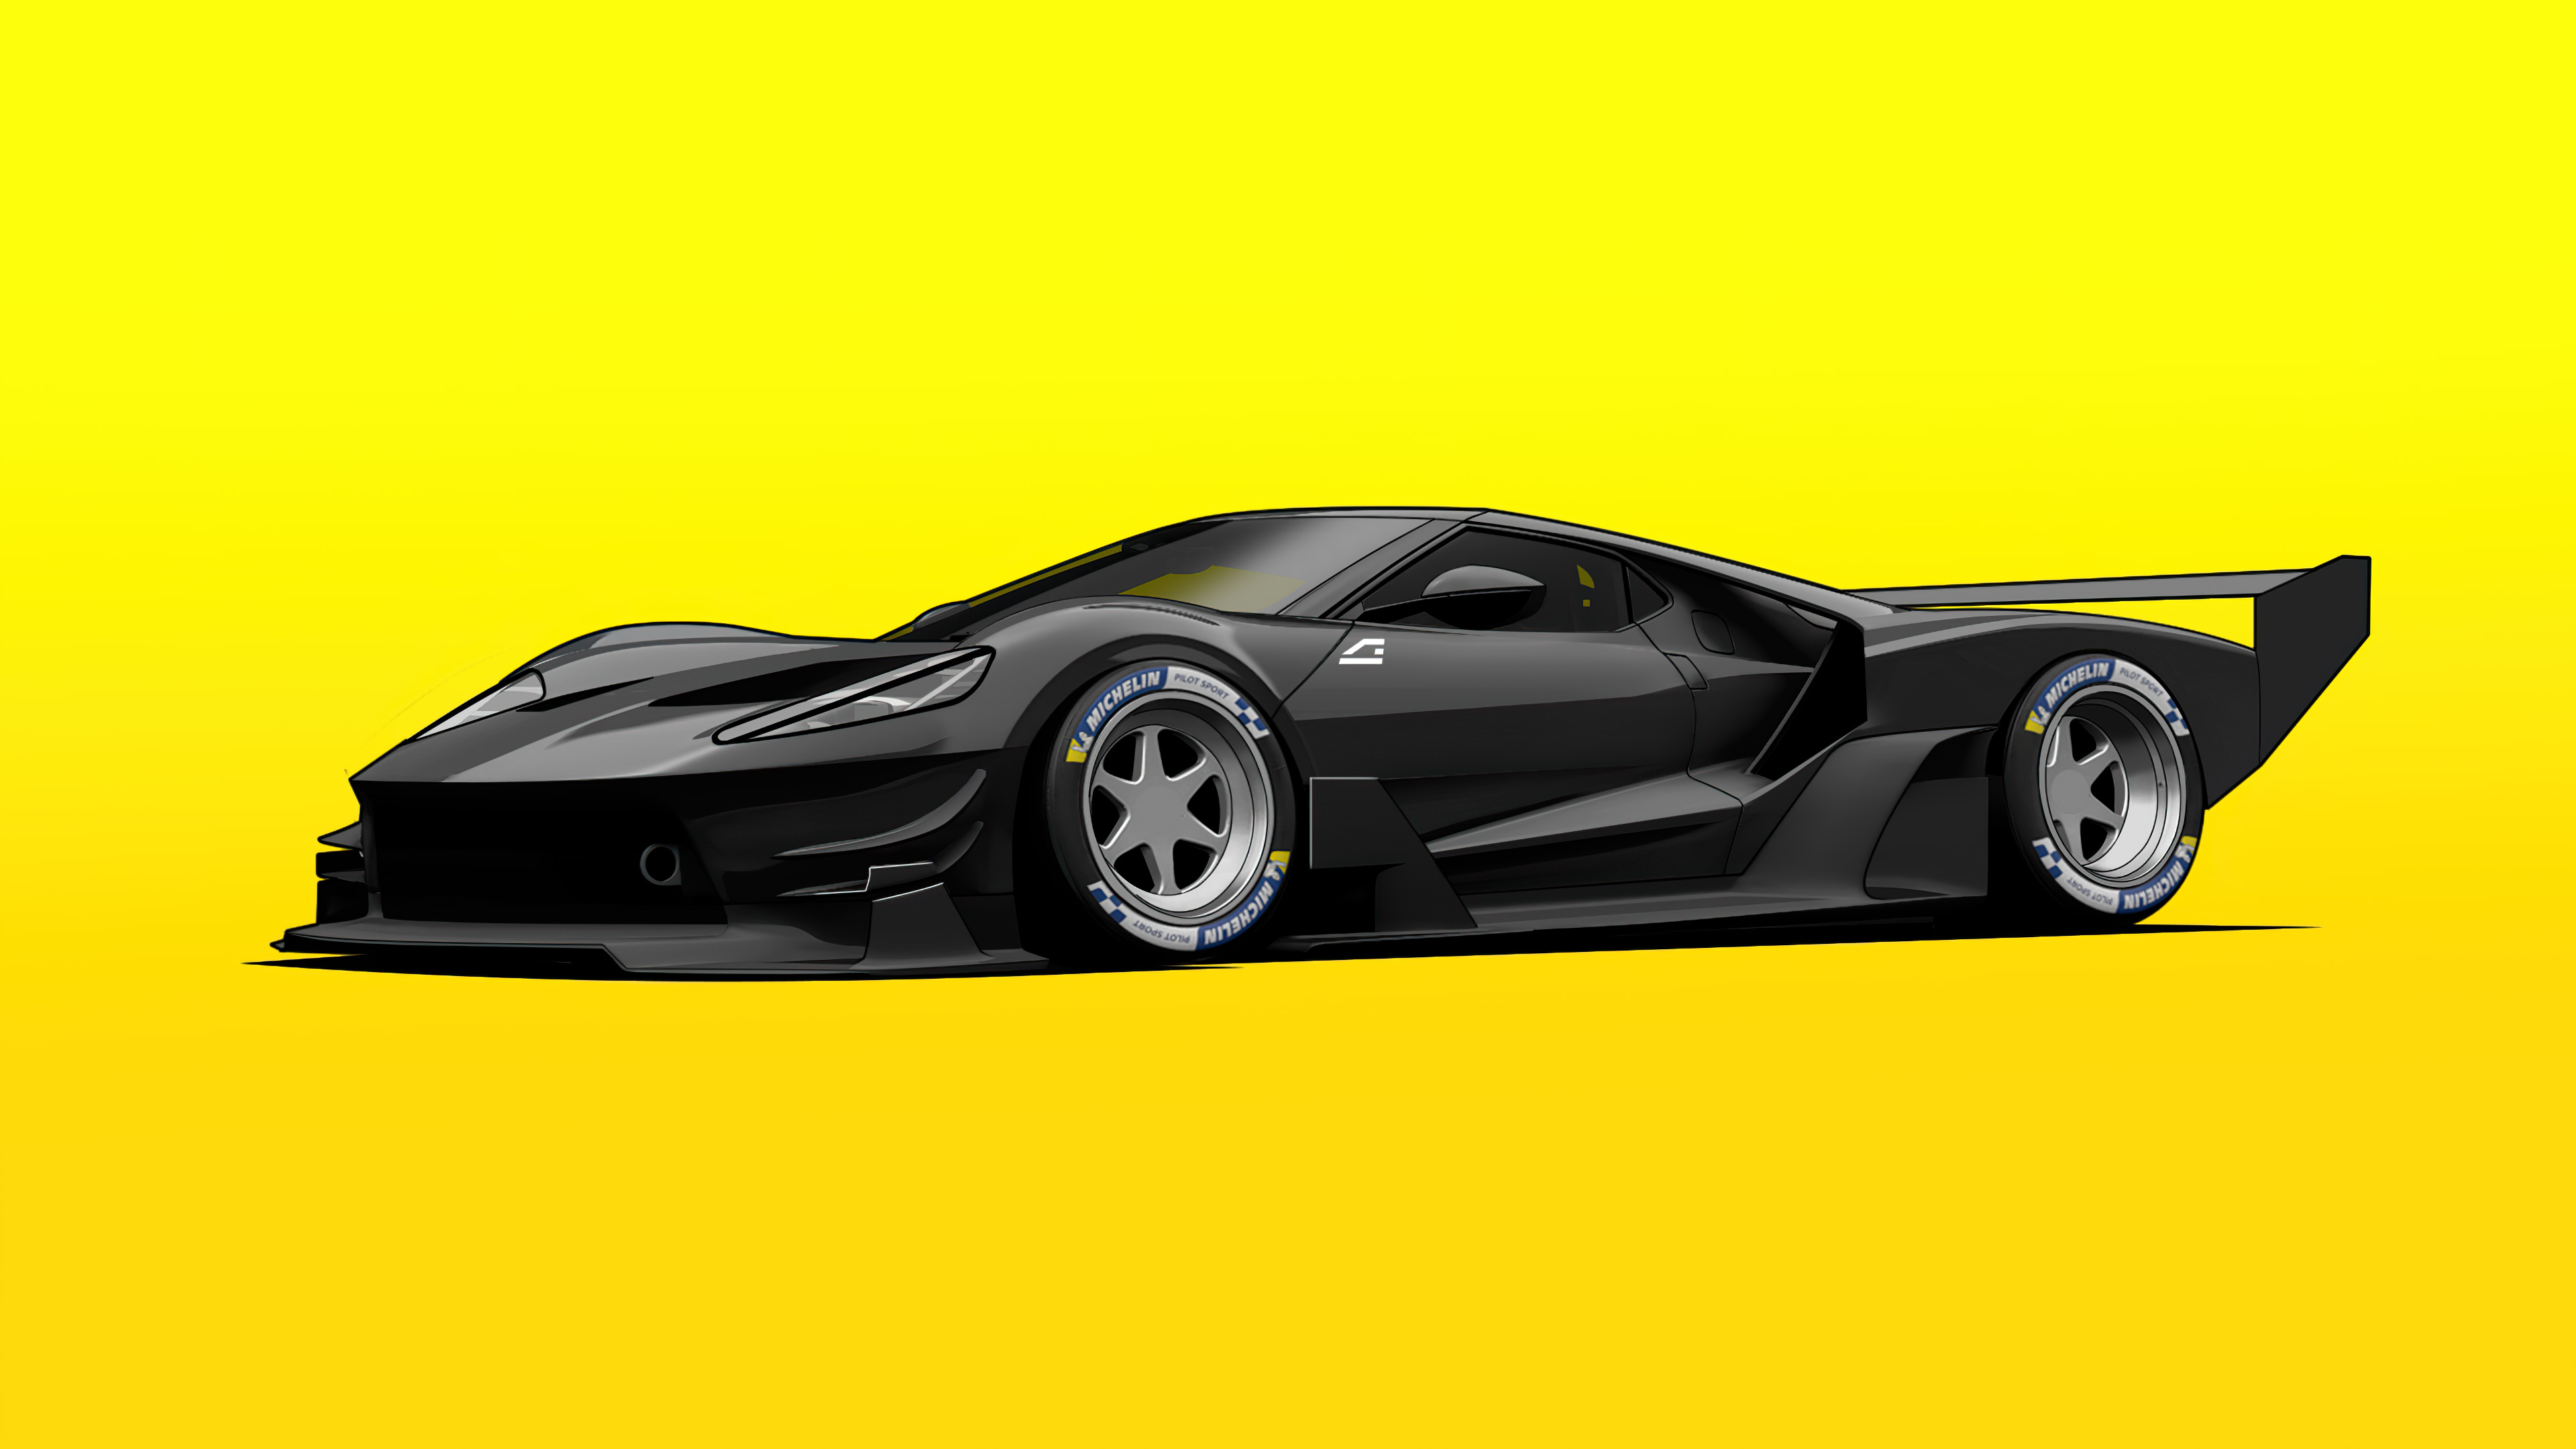 ford gt c vgt minimal yellow 4k 1608907628 - Ford GT C Vgt Minimal Yellow 4k - Ford GT C Vgt Minimal Yellow 4k wallpapers